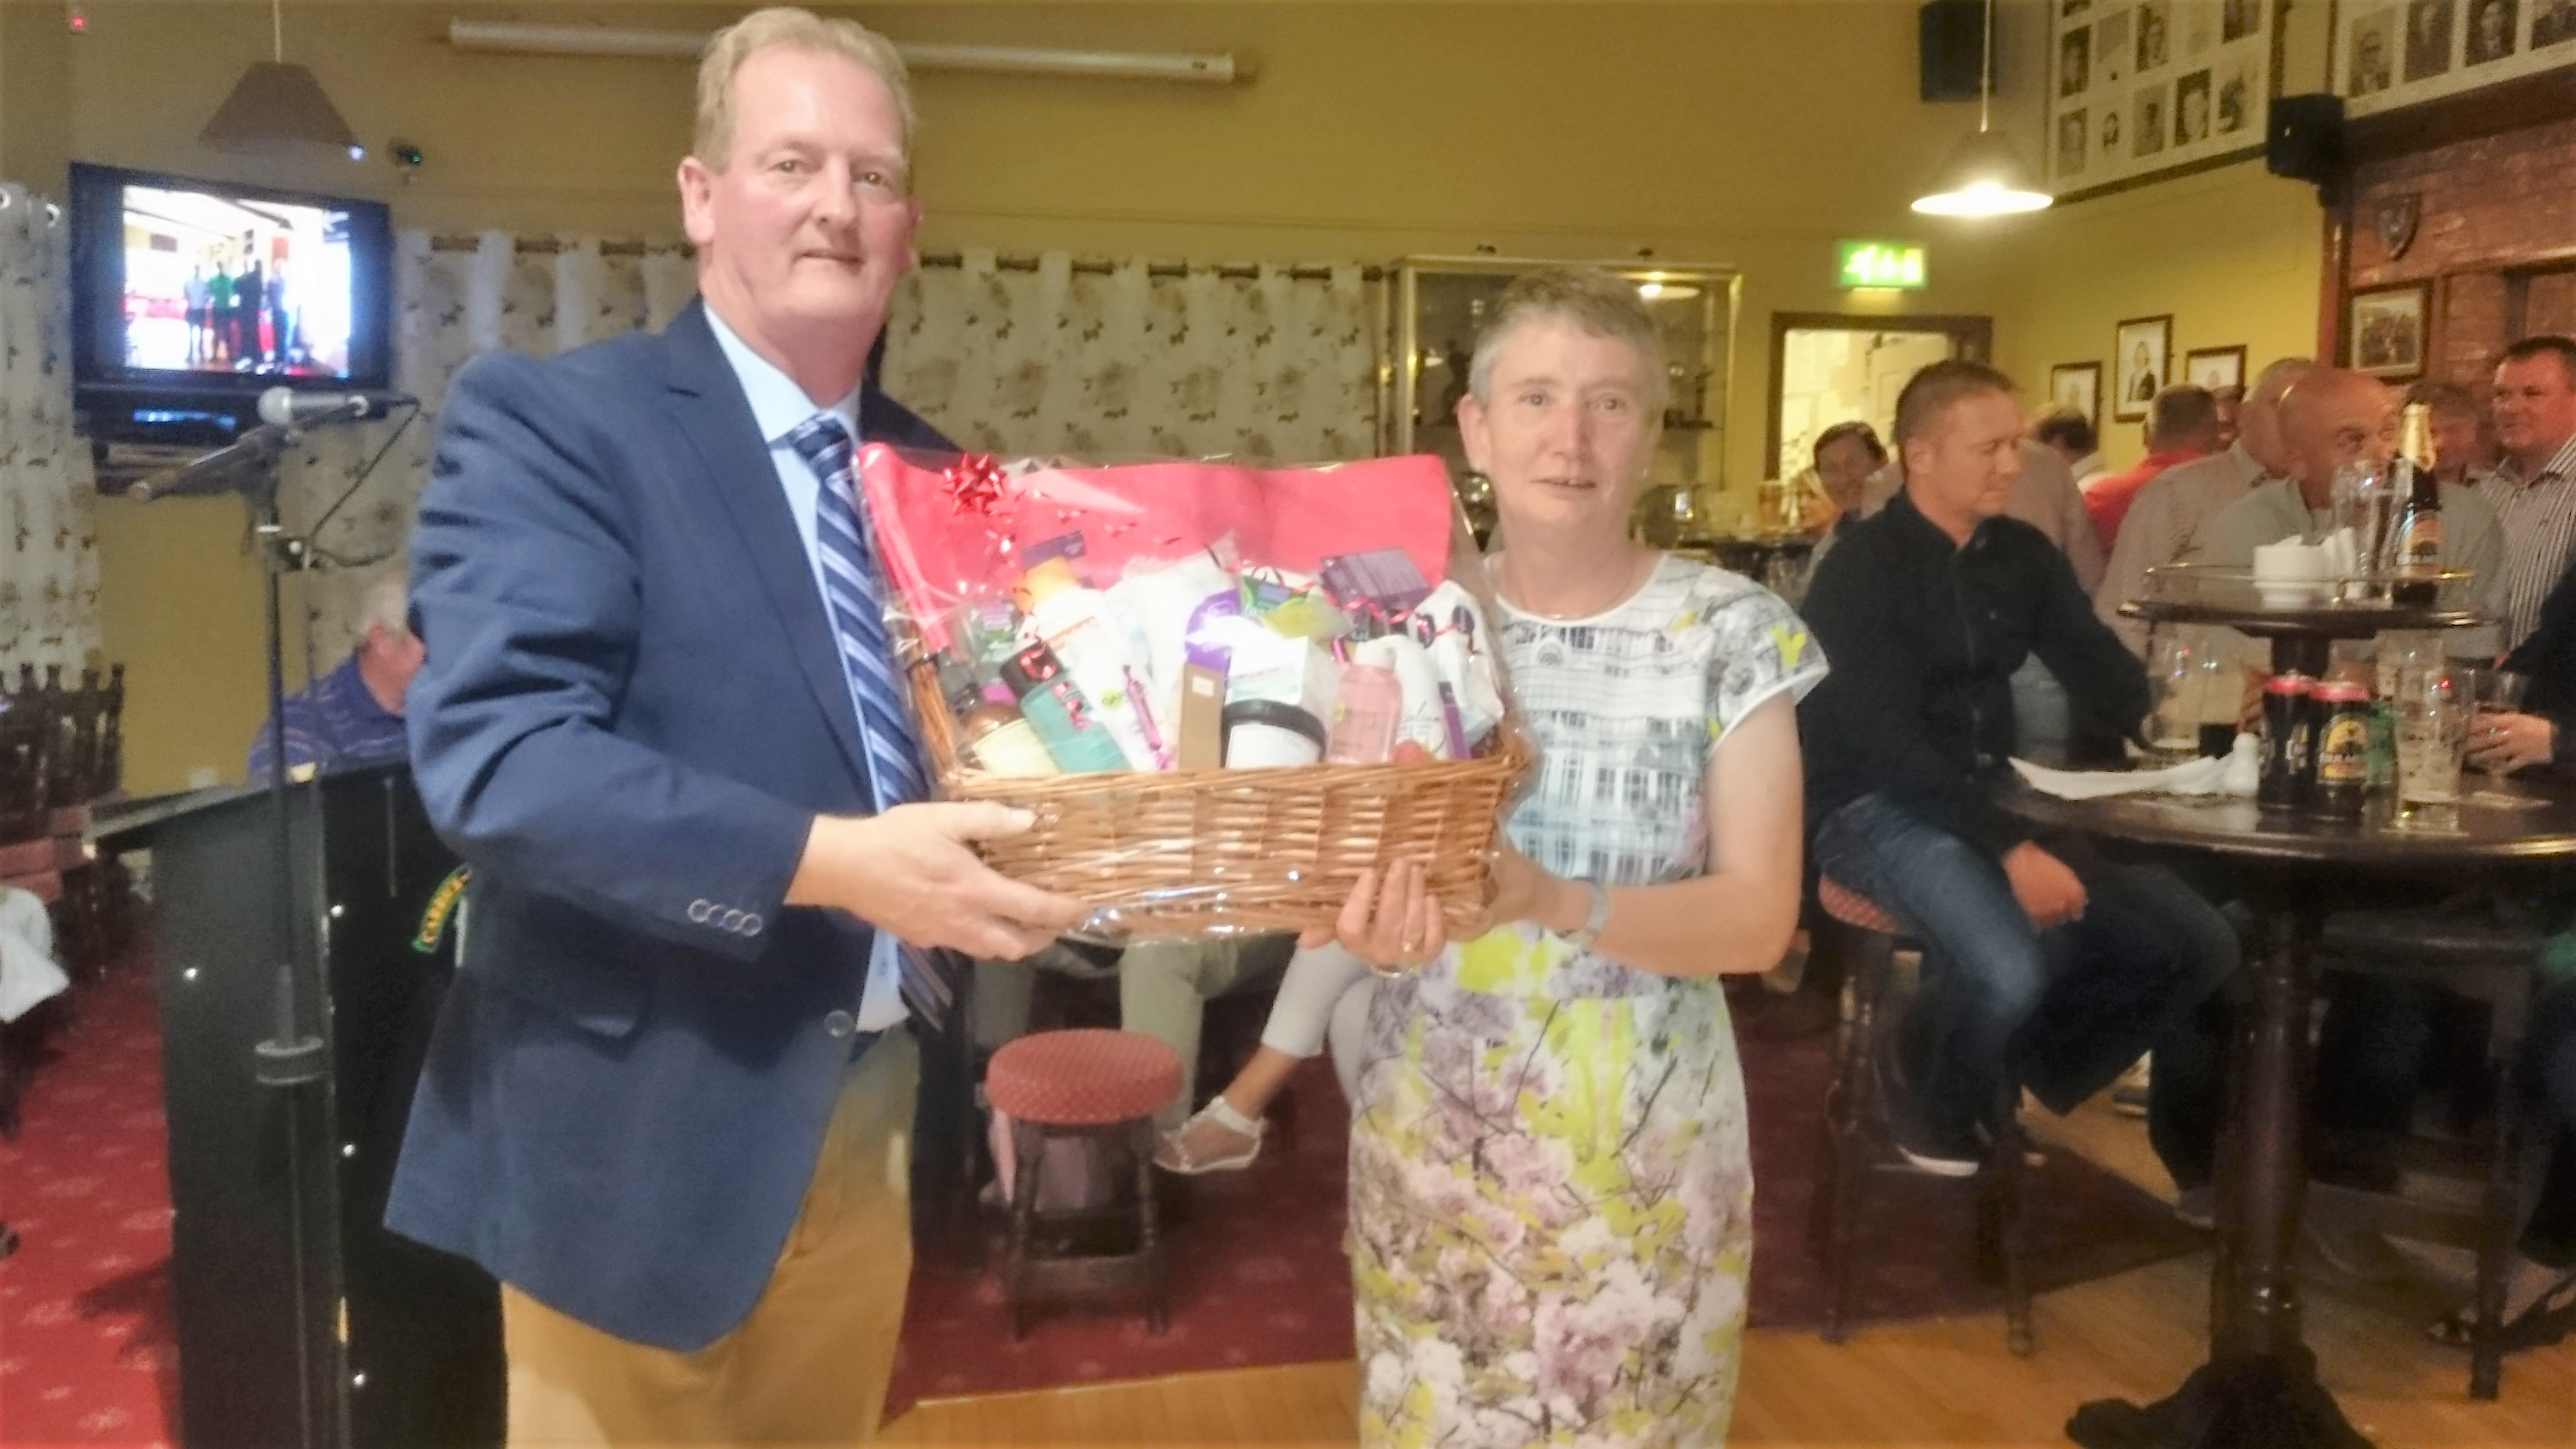 CAPTAIN'S PRIZE TO LADIES: Attracta O'Connor(SECOND), Captain Damien Duignan